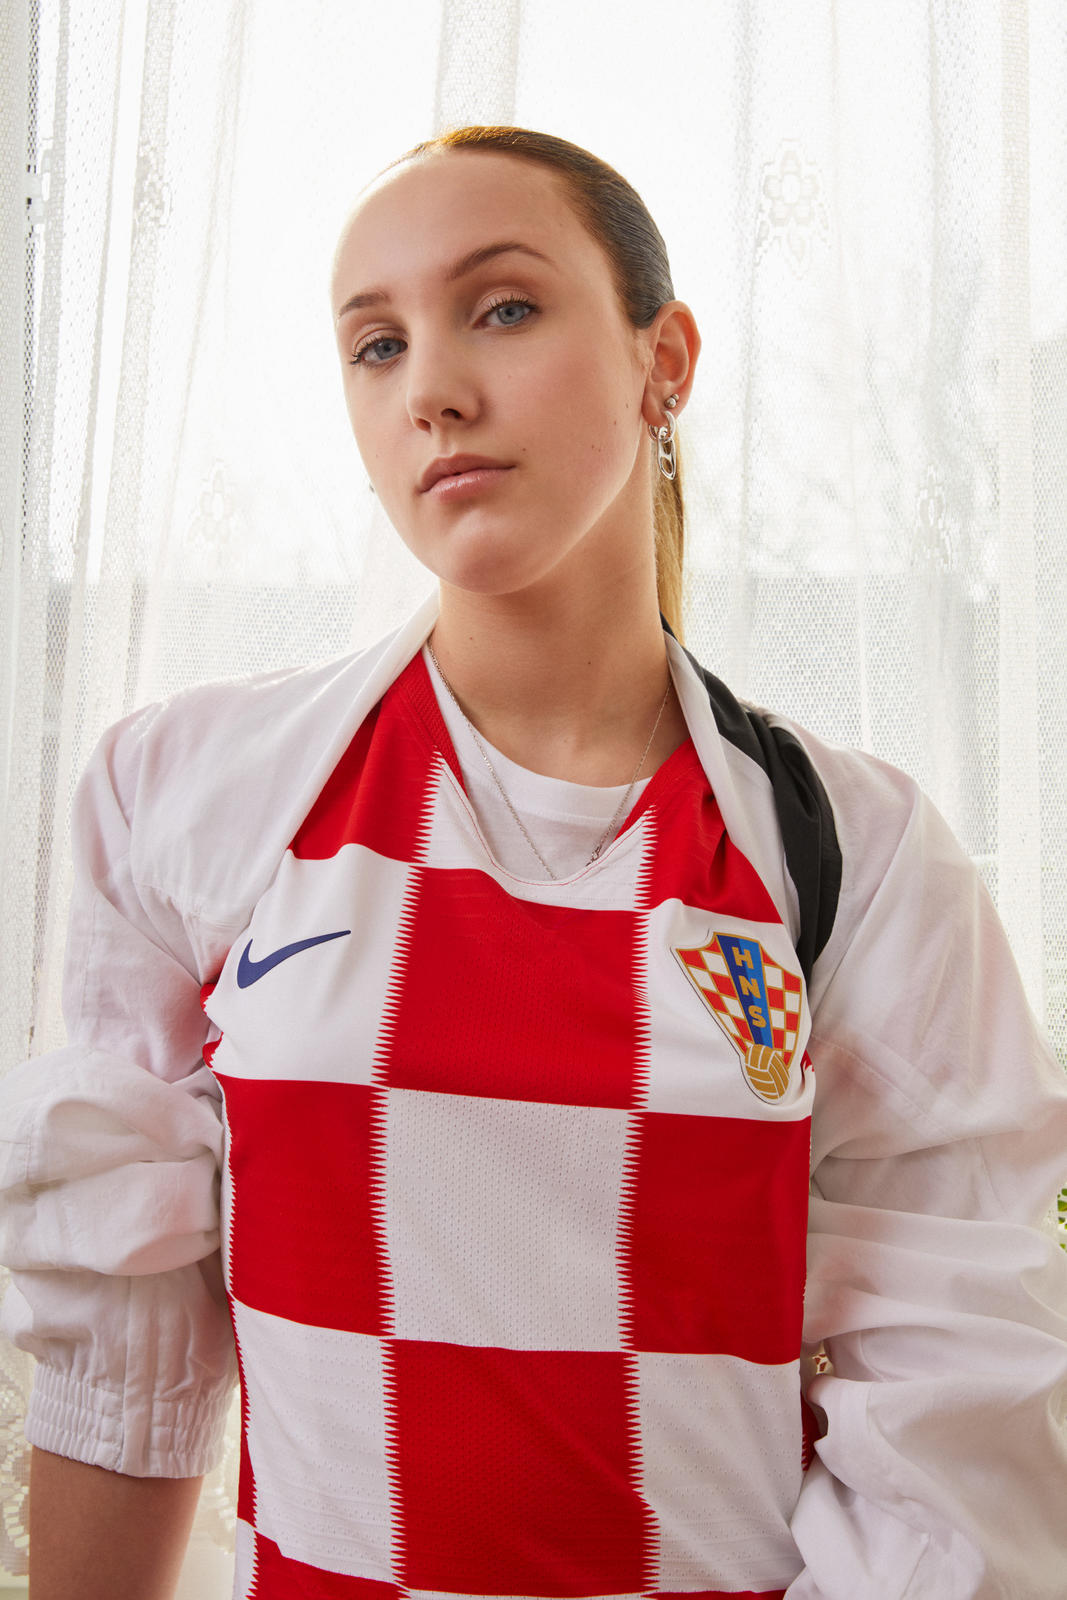 reputable site 30c40 0176b Check It: Croatia's New Kits Are Bold and Beautiful - Nike News